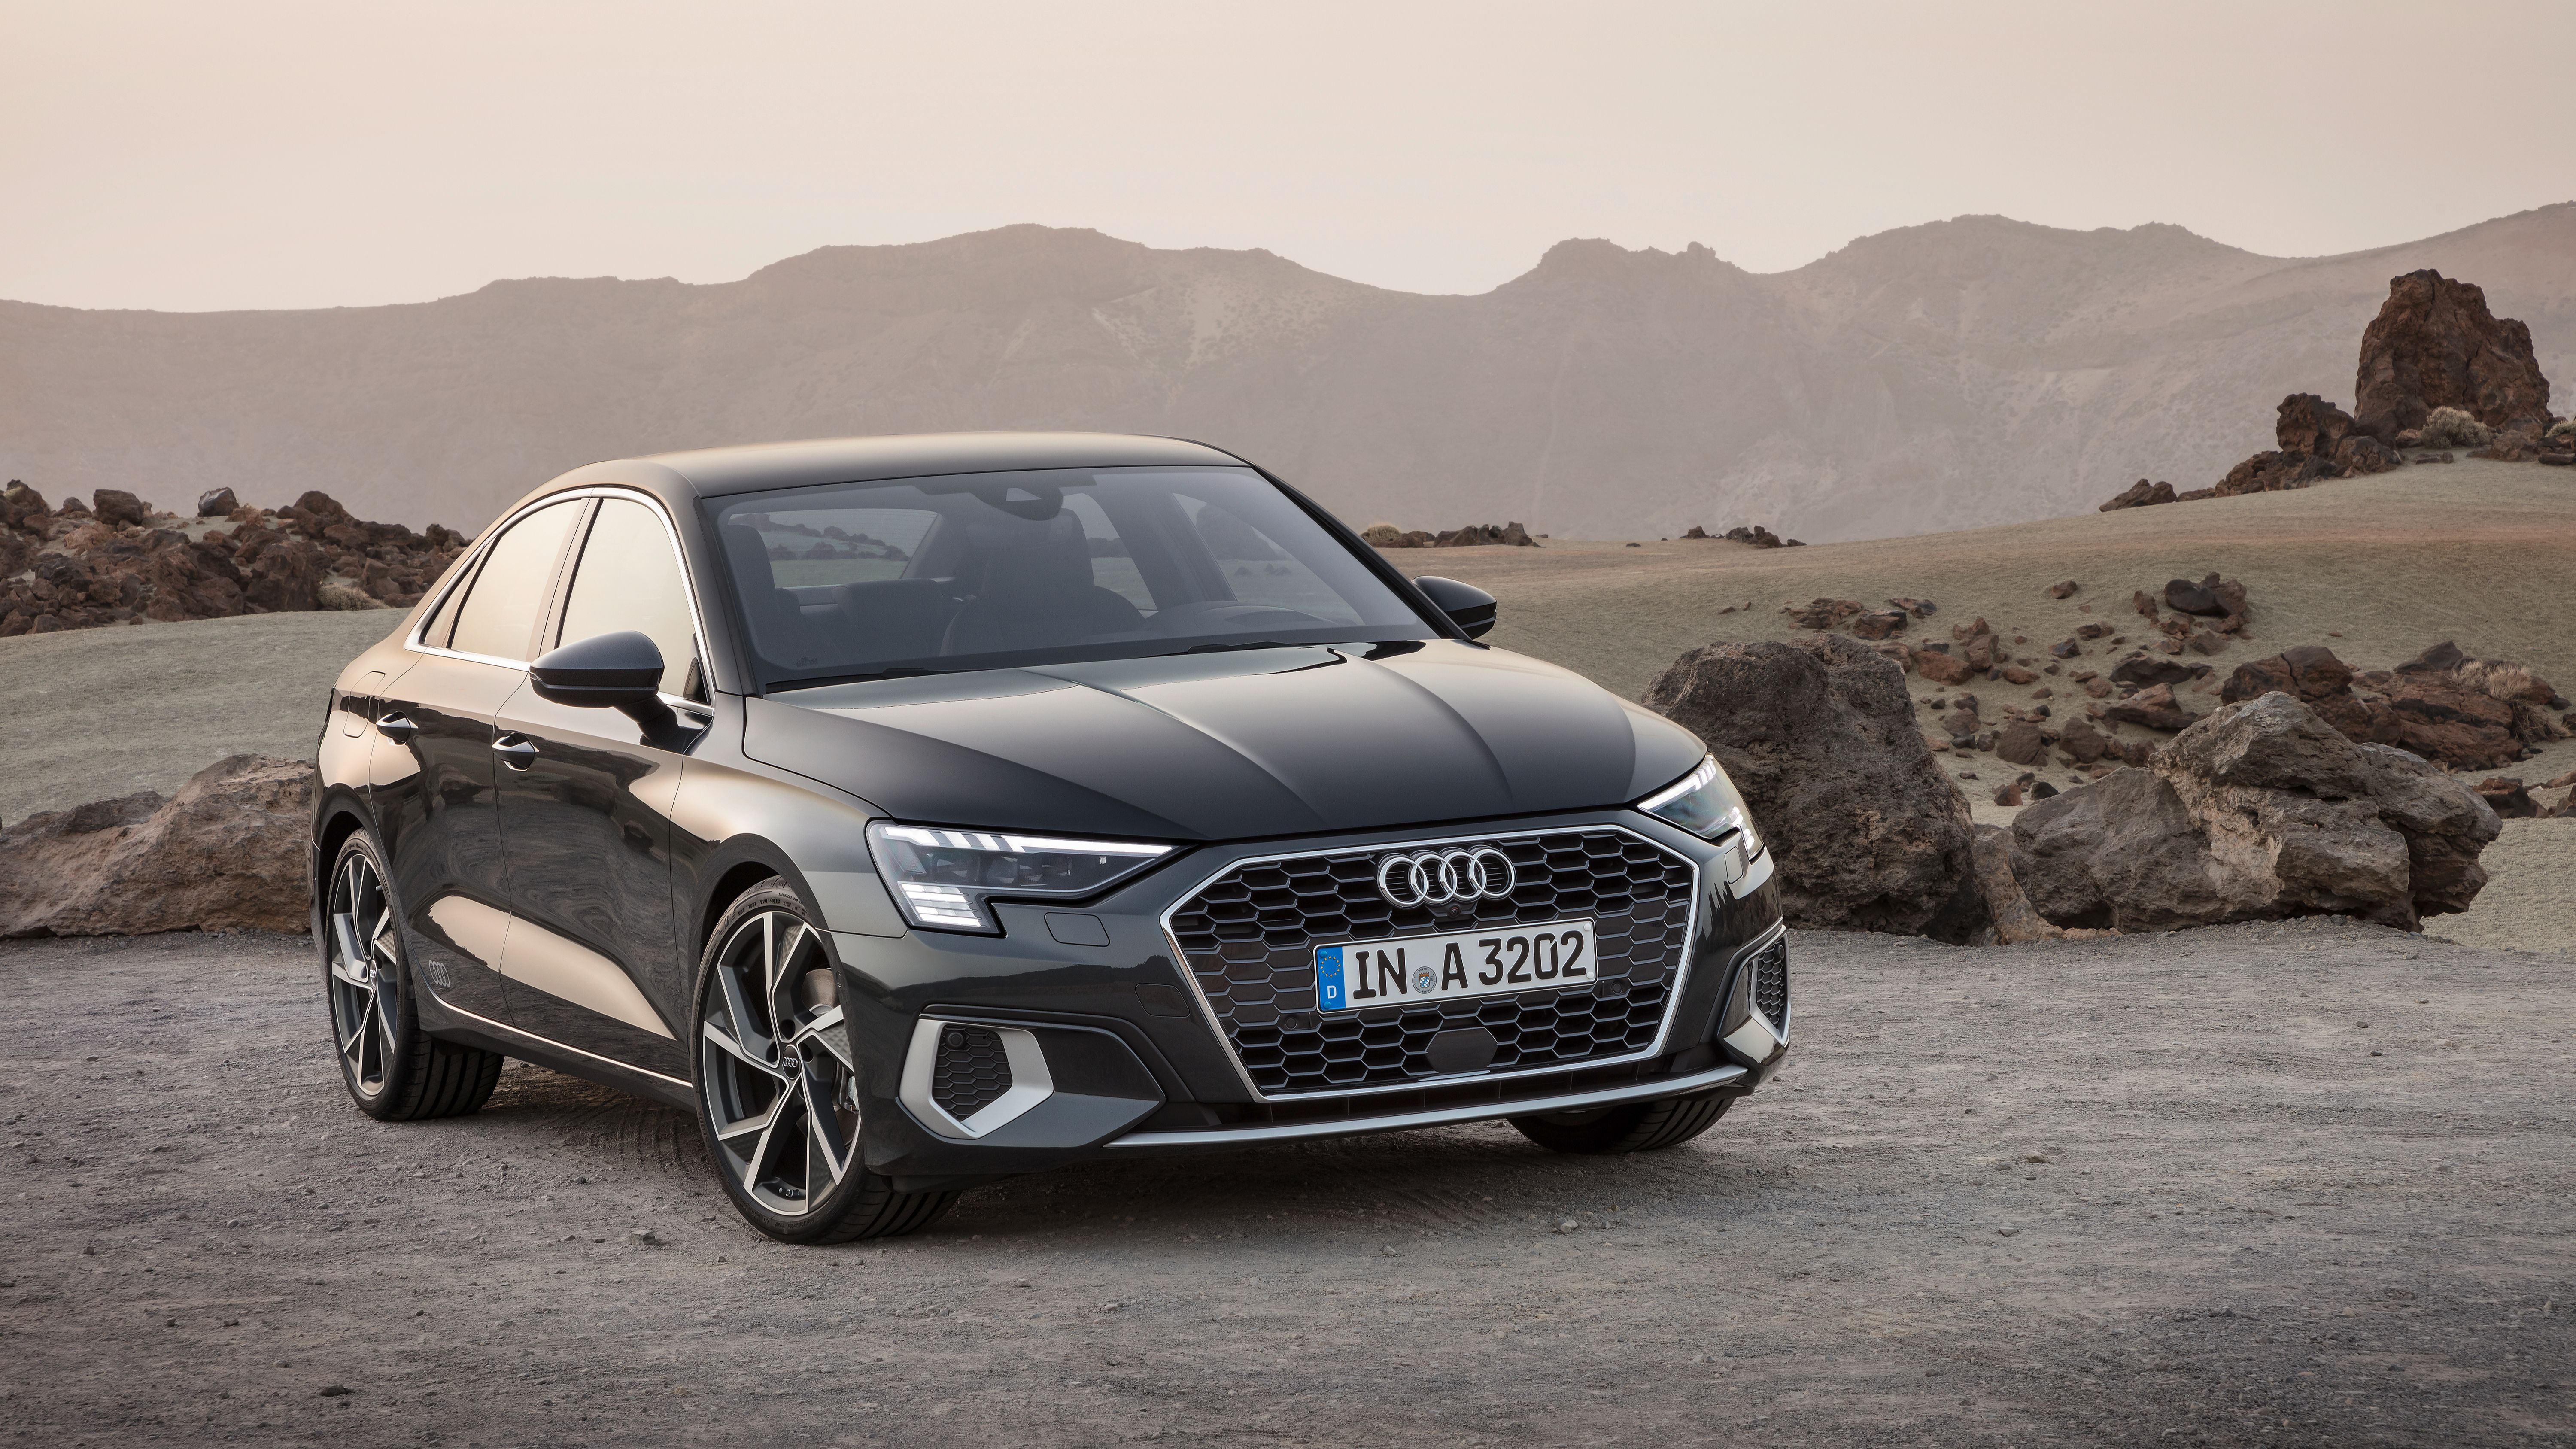 ALl new Audi A3 Saloon from front